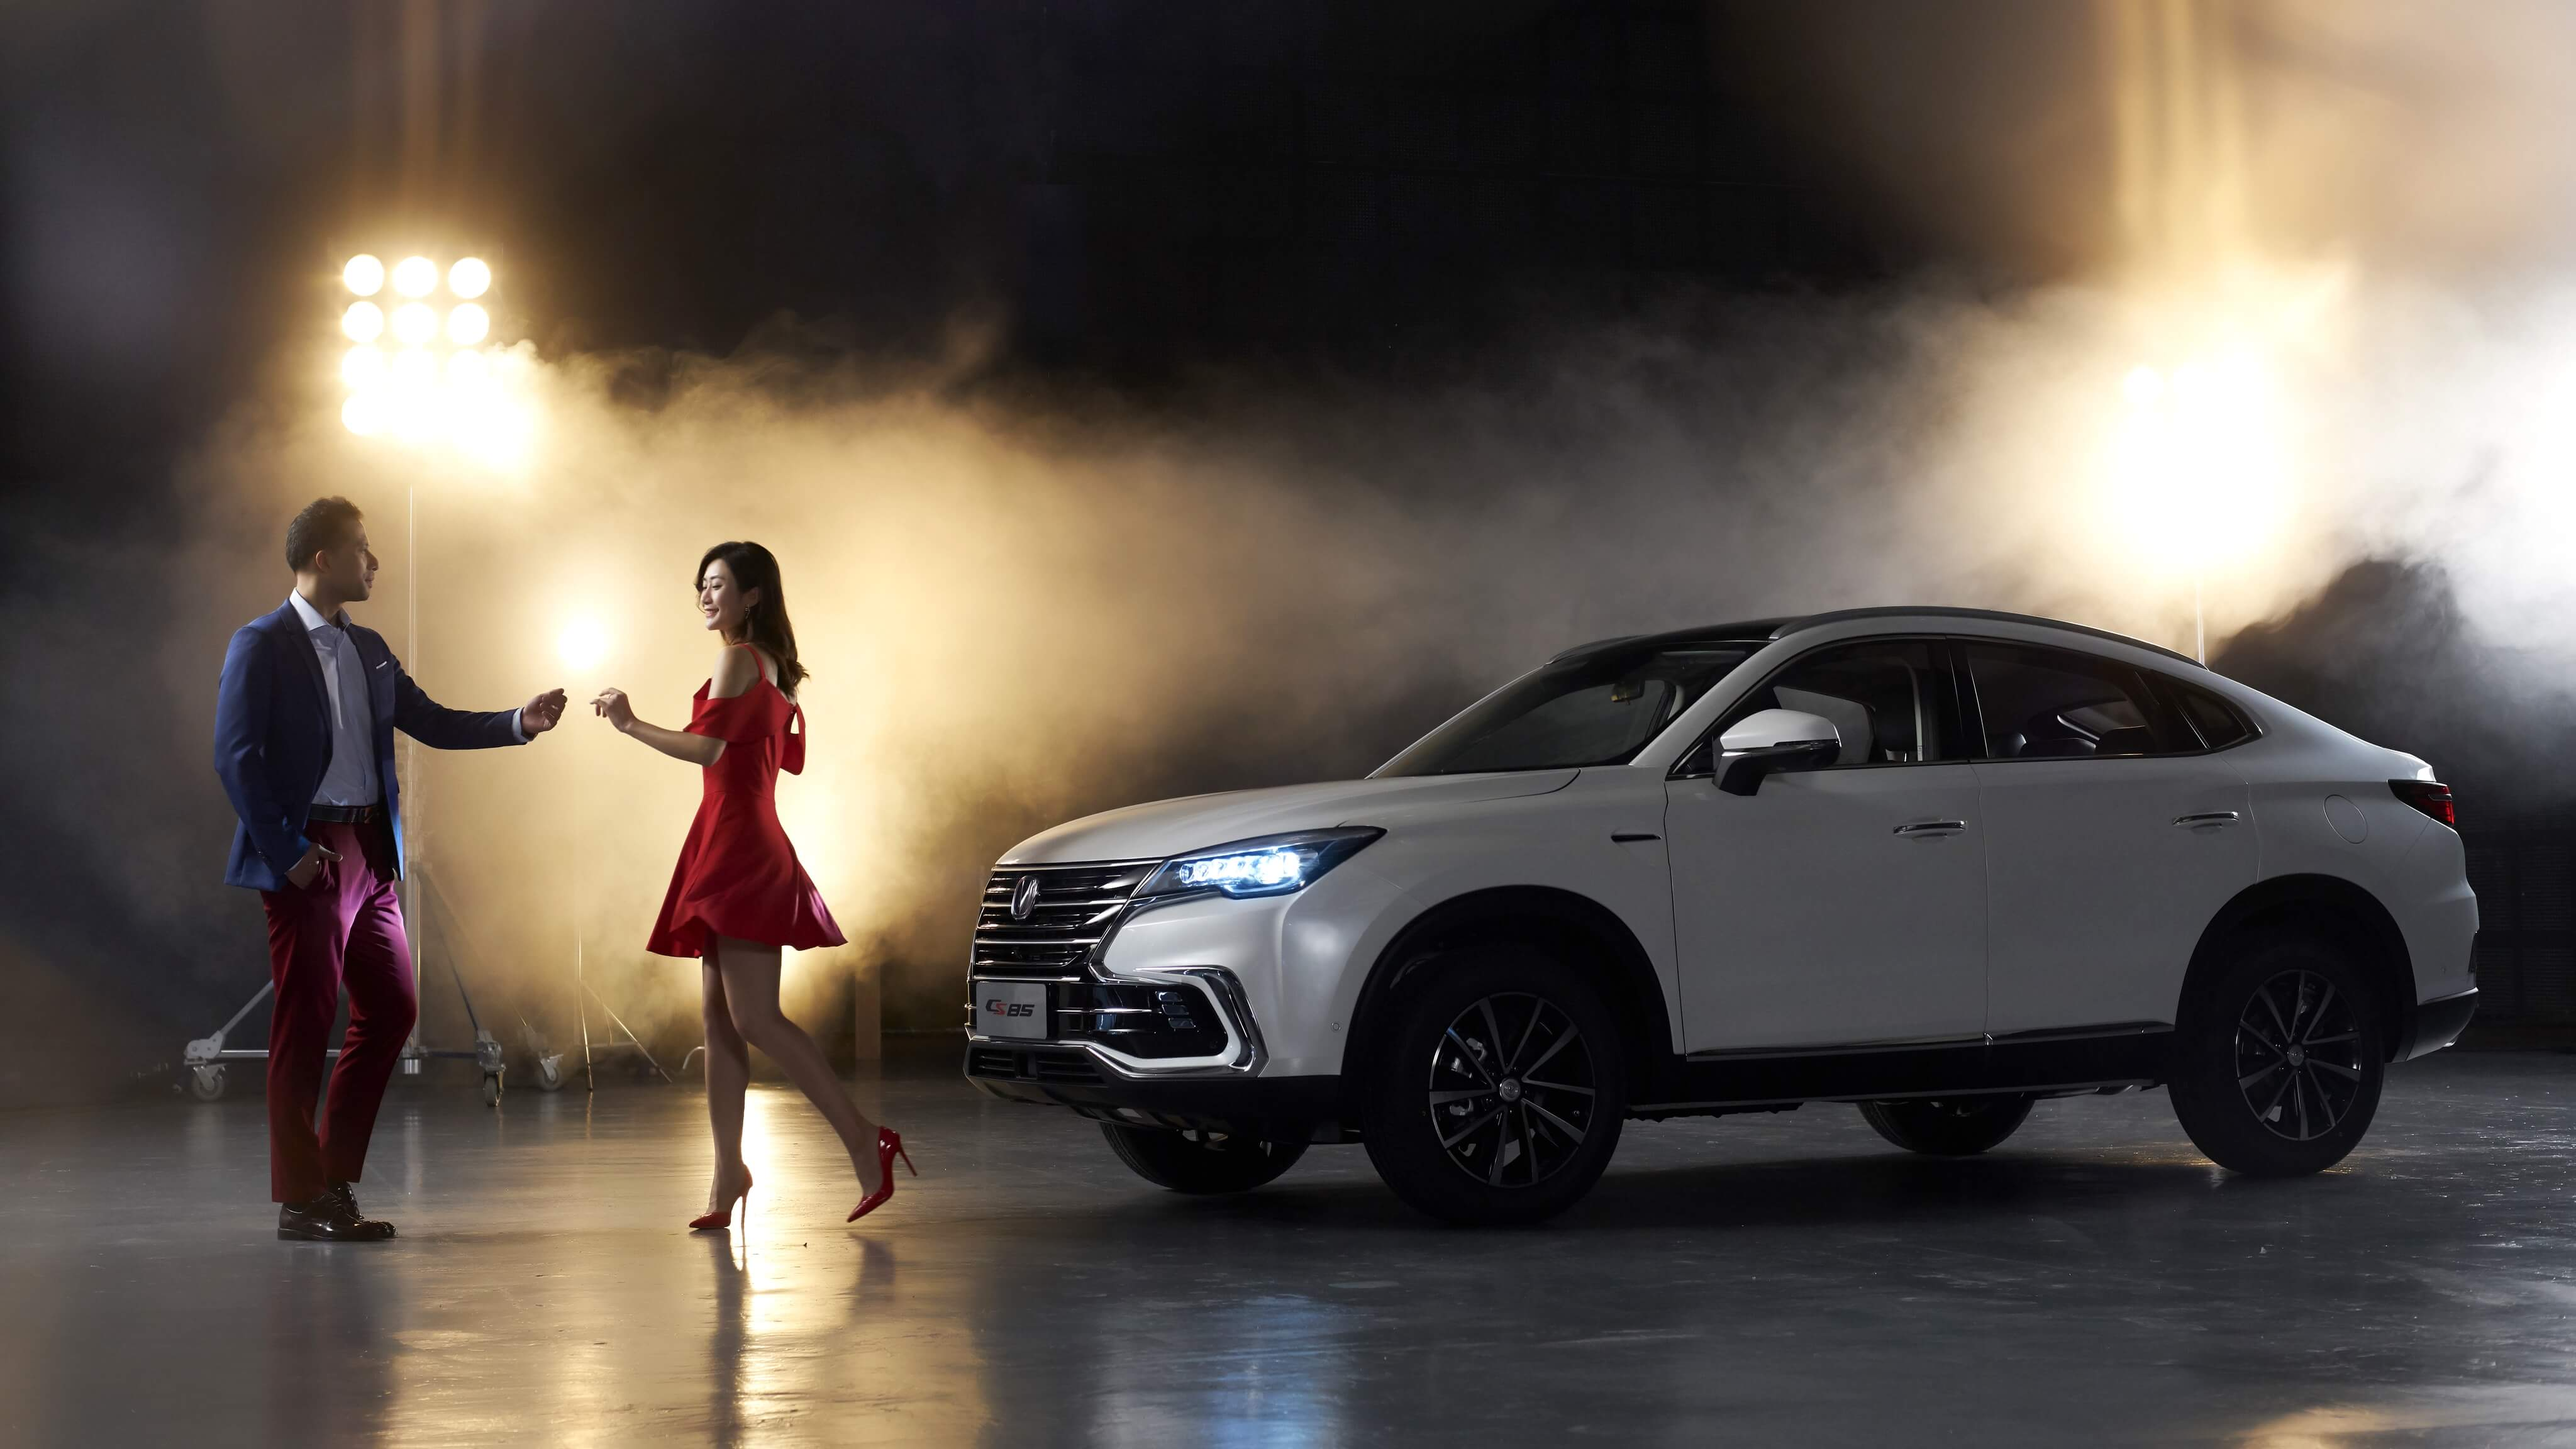 Chinese SUV Coupe similar to BMW